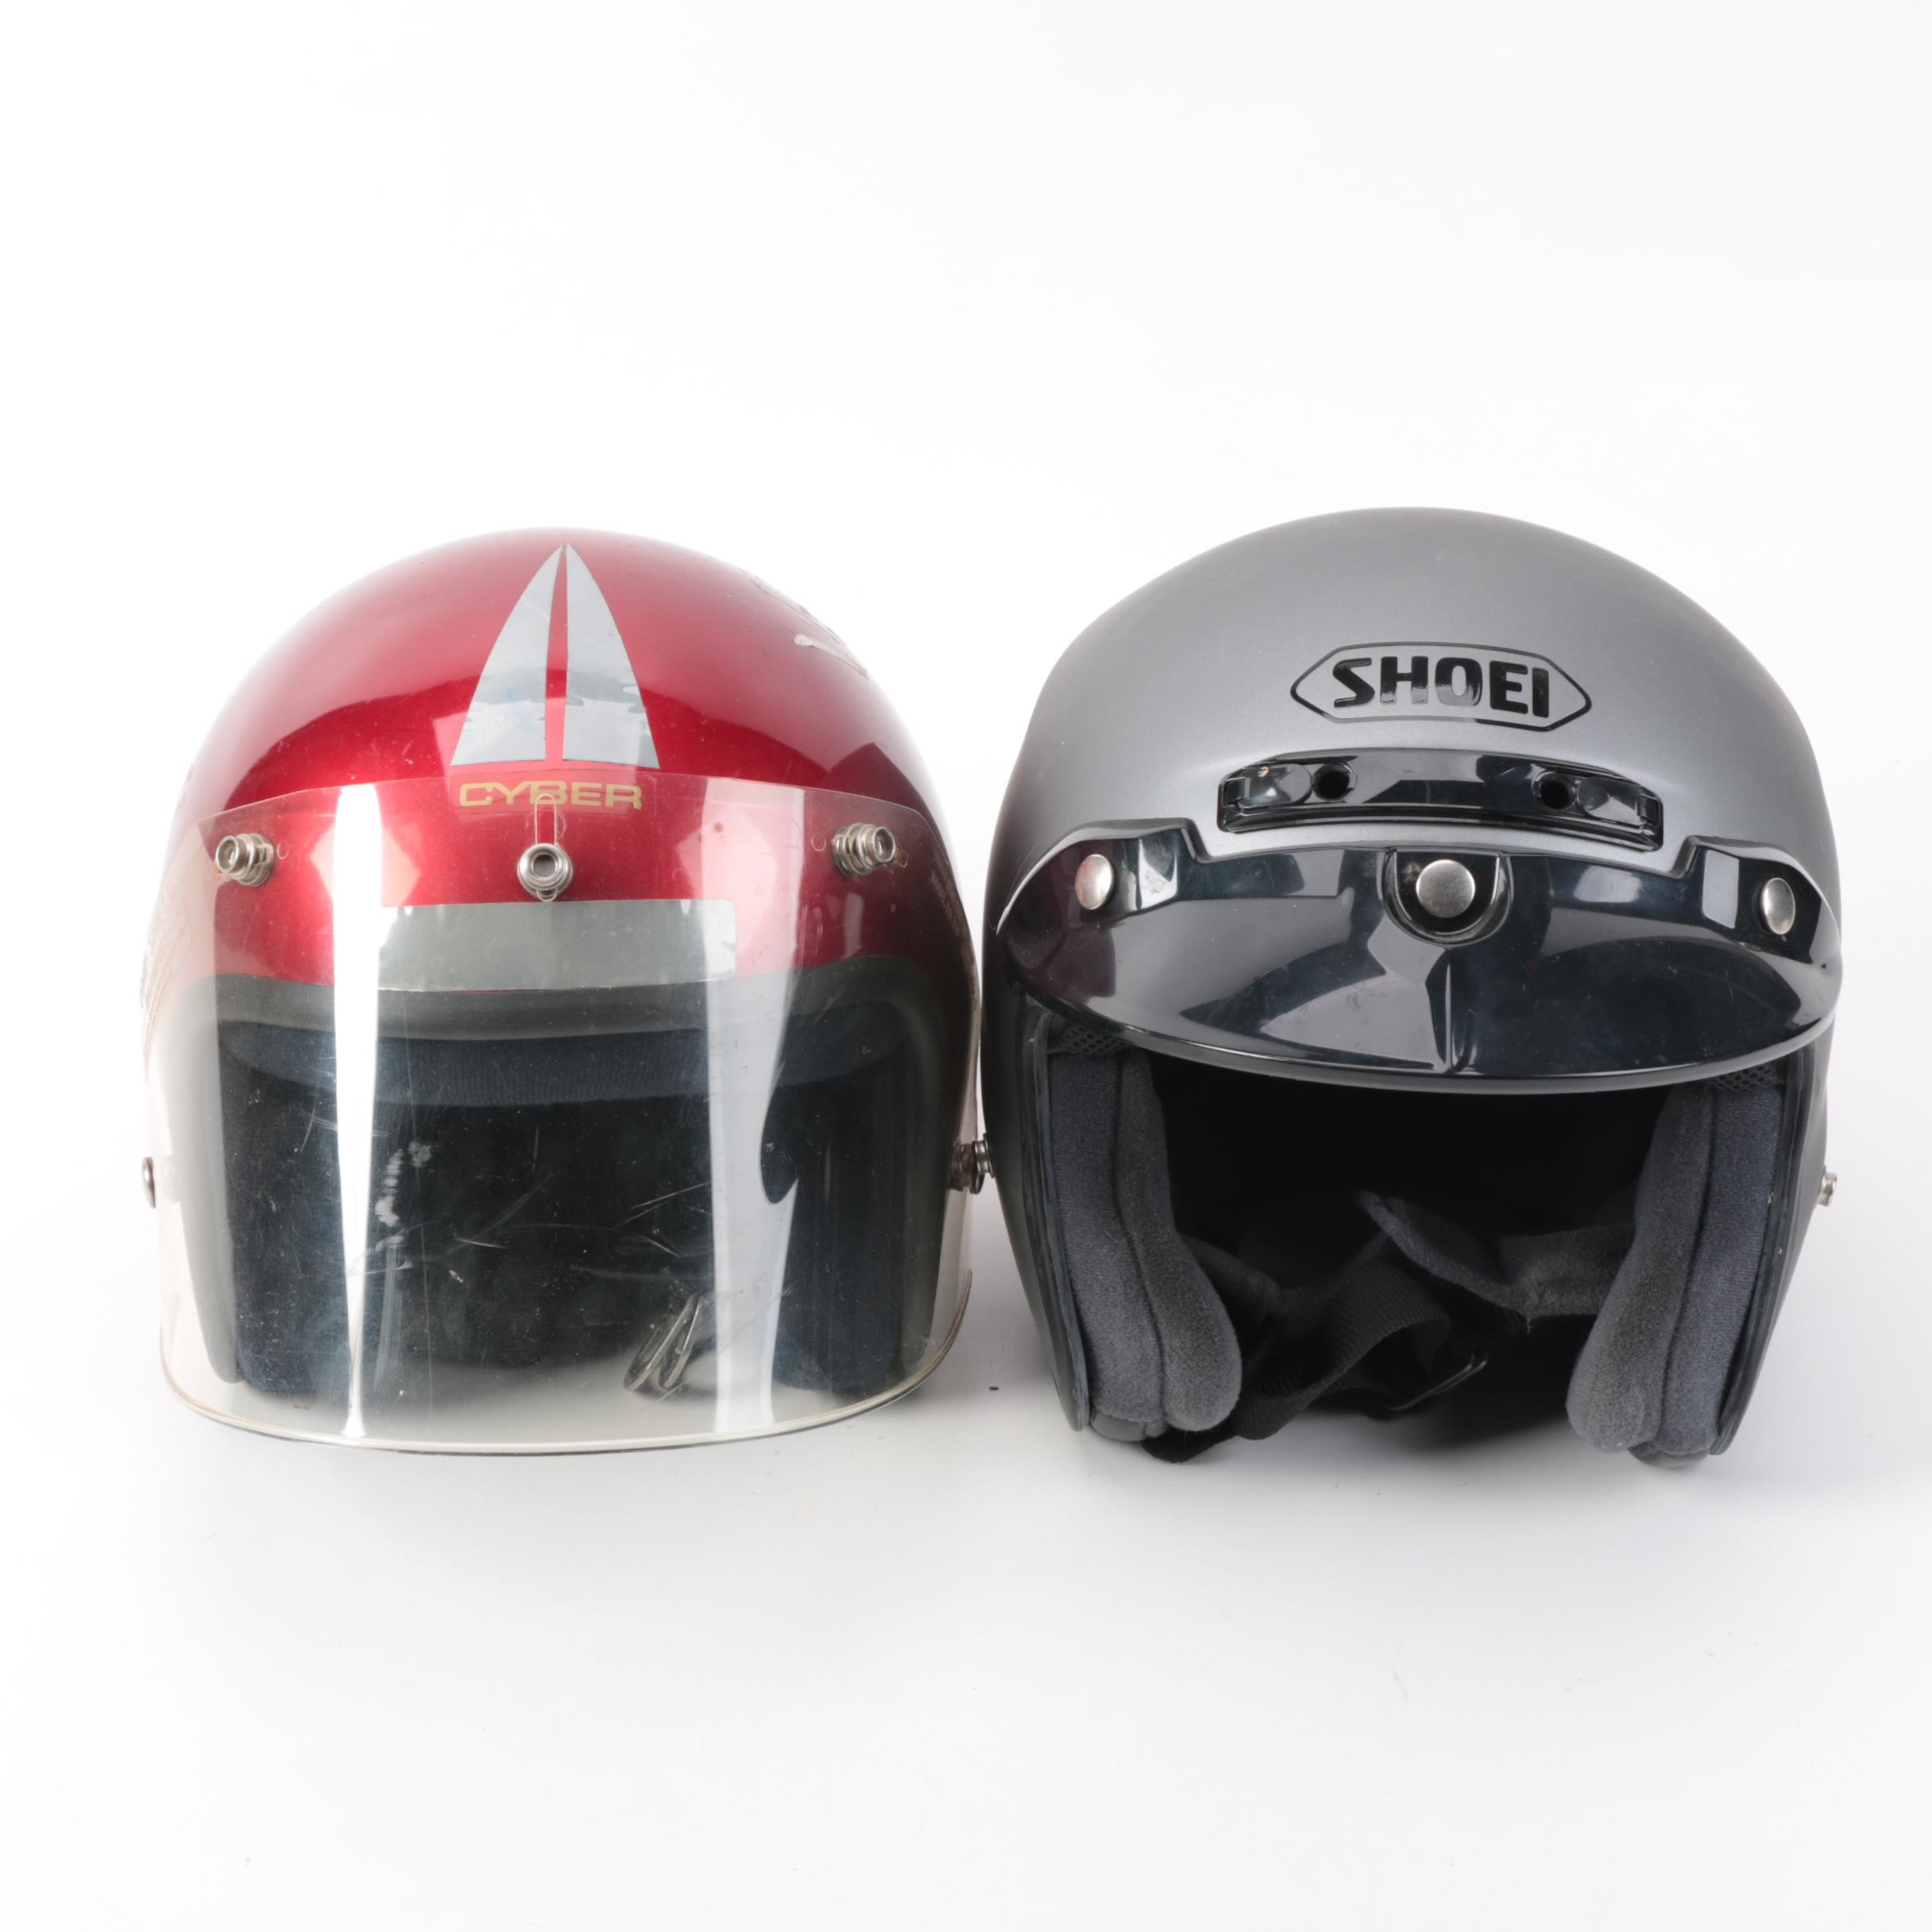 Cyber and Shoei Motorcycle Helmets